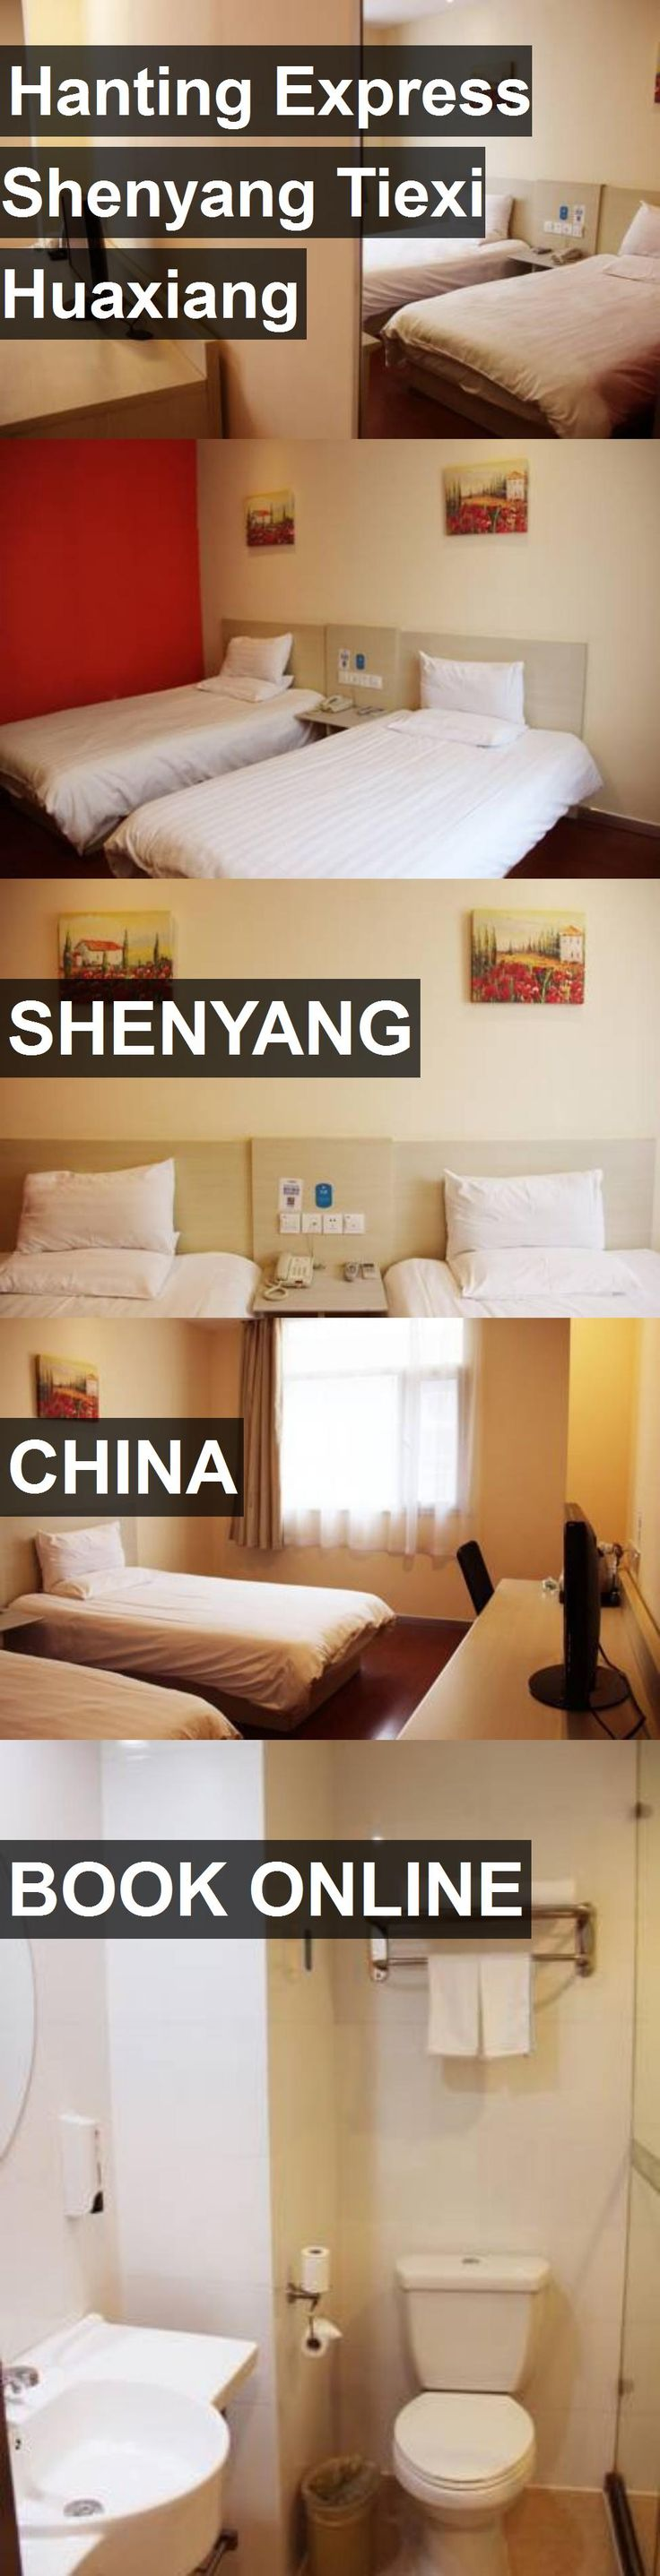 Hotel Hanting Express Shenyang Tiexi Huaxiang in Shenyang, China. For more information, photos, reviews and best prices please follow the link. #China #Shenyang #travel #vacation #hotel